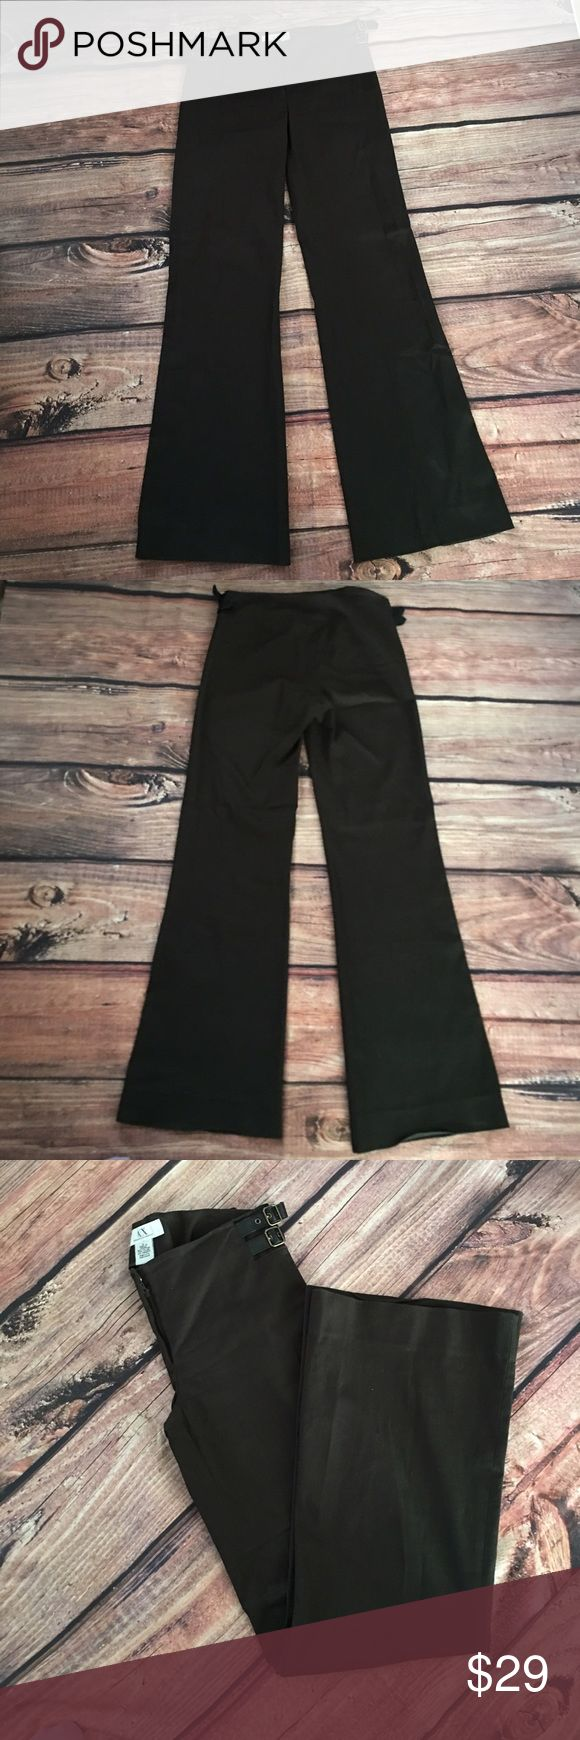 "Armani Exchange Subtle Stripe Boot-Cut Trousers Pre-owned in good condition.  These subtle striped trousers from Armani Exchange are as timeless as they are chic--a wardrobe must for polished workweek style. Enhancing the look are adjustable side faux belt detail.  32"" inseam; 22"" leg opening; 9 1/2"" front rise; 11"" back rise (size 2) Front zip, one button and hook & eye closure No pockets 62% cotton, 34% nylon, 4% spandex Machine wash cold, tumble dry low Imported Armani Exchange Pants Boot…"